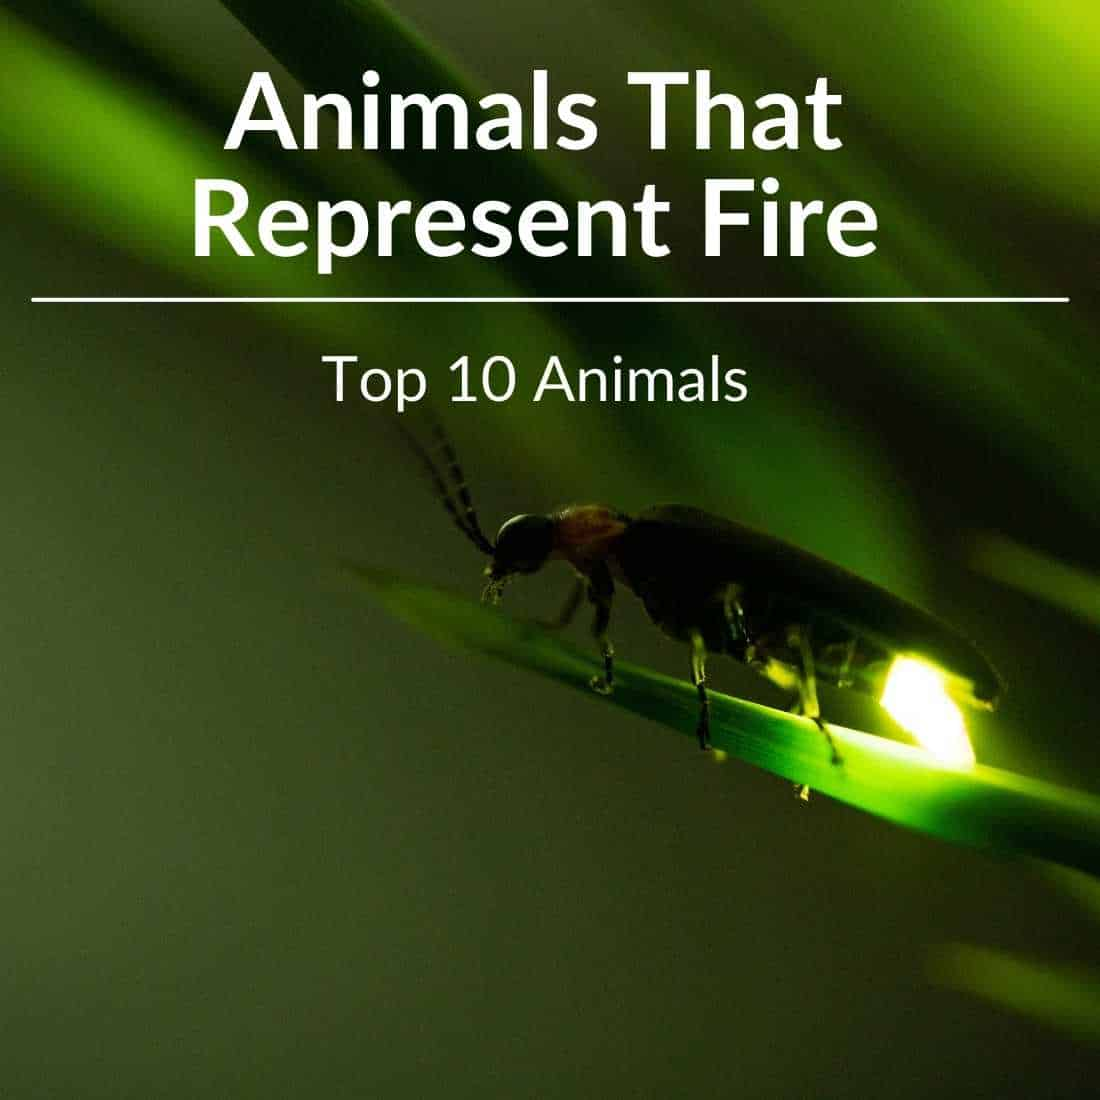 Animals That Represent Fire